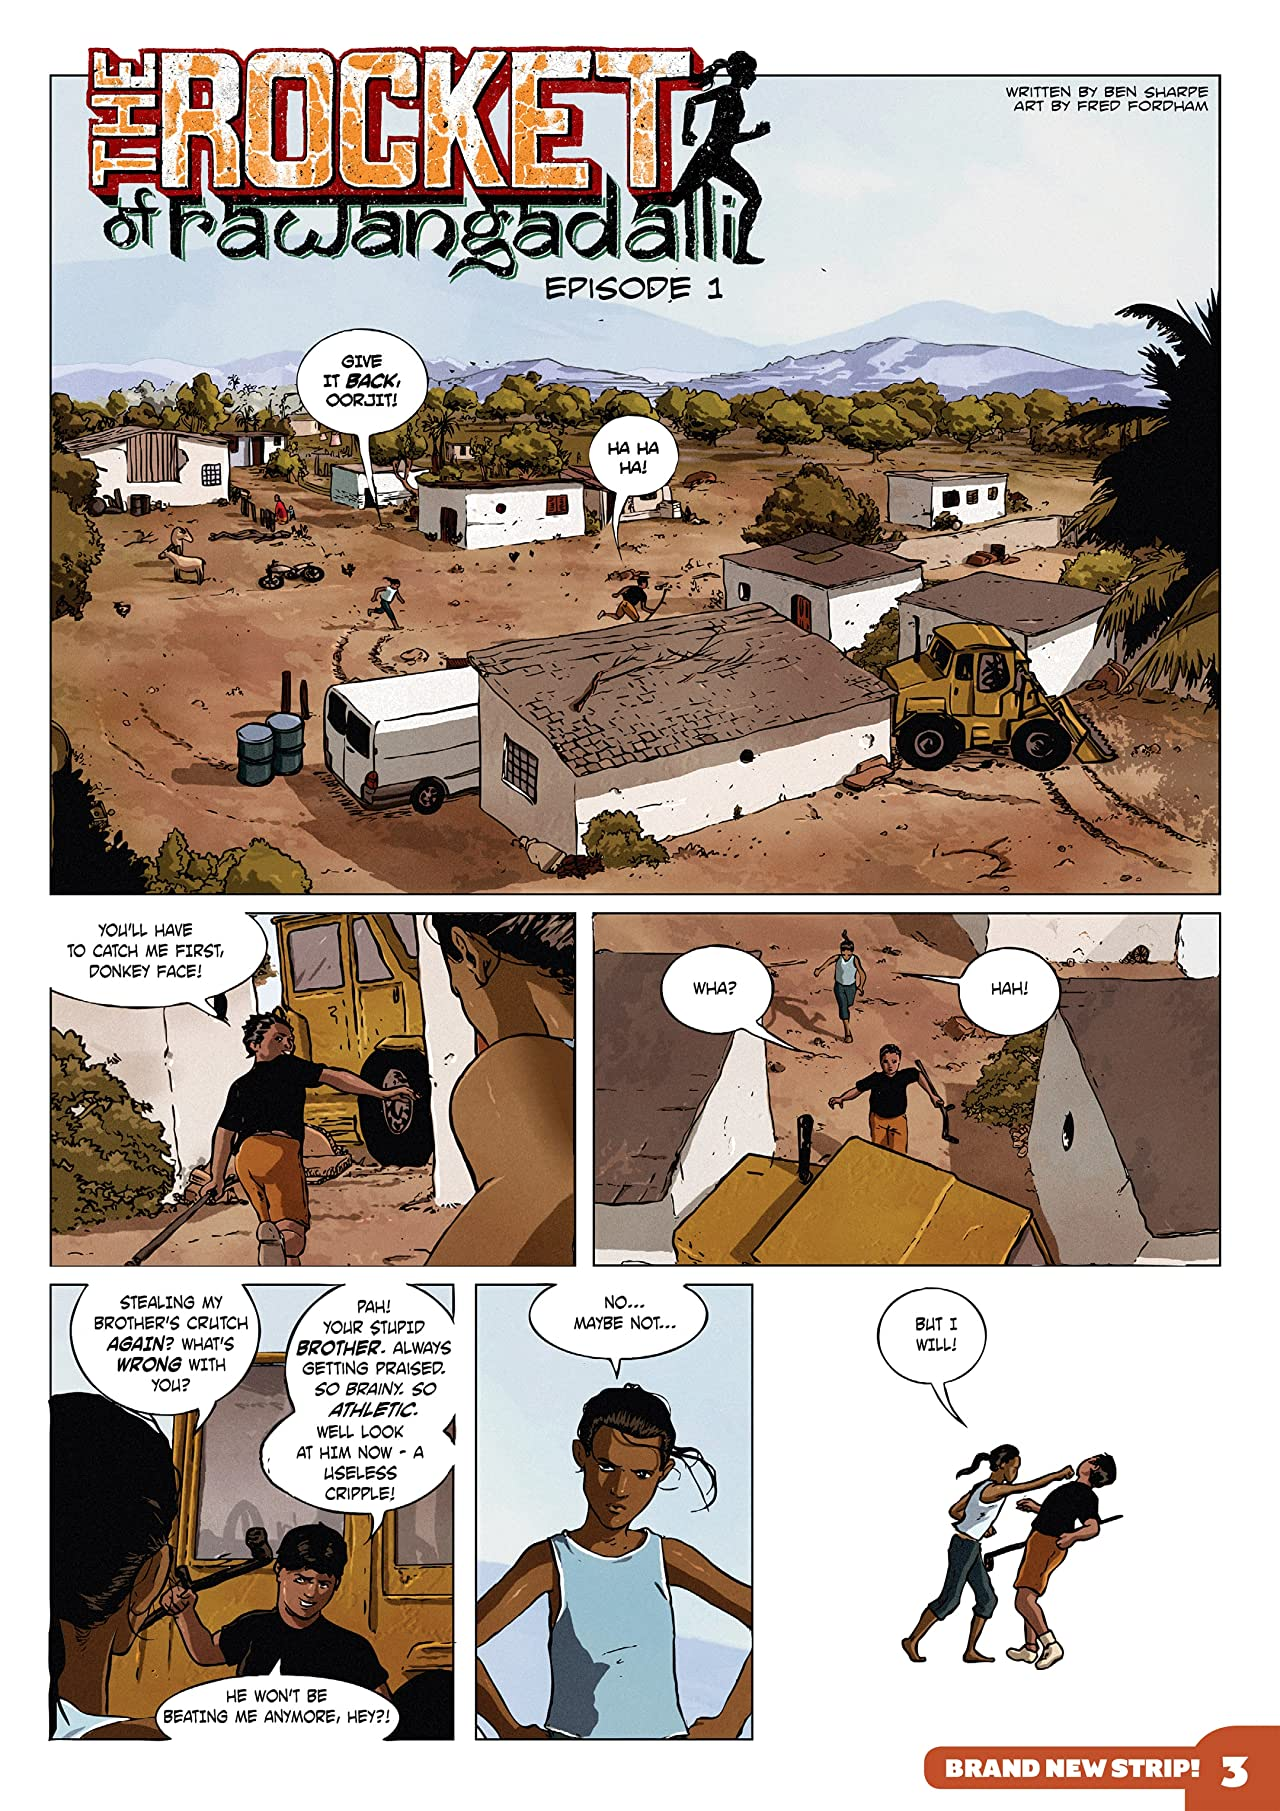 The Phoenix #158: The Weekly Story Comic